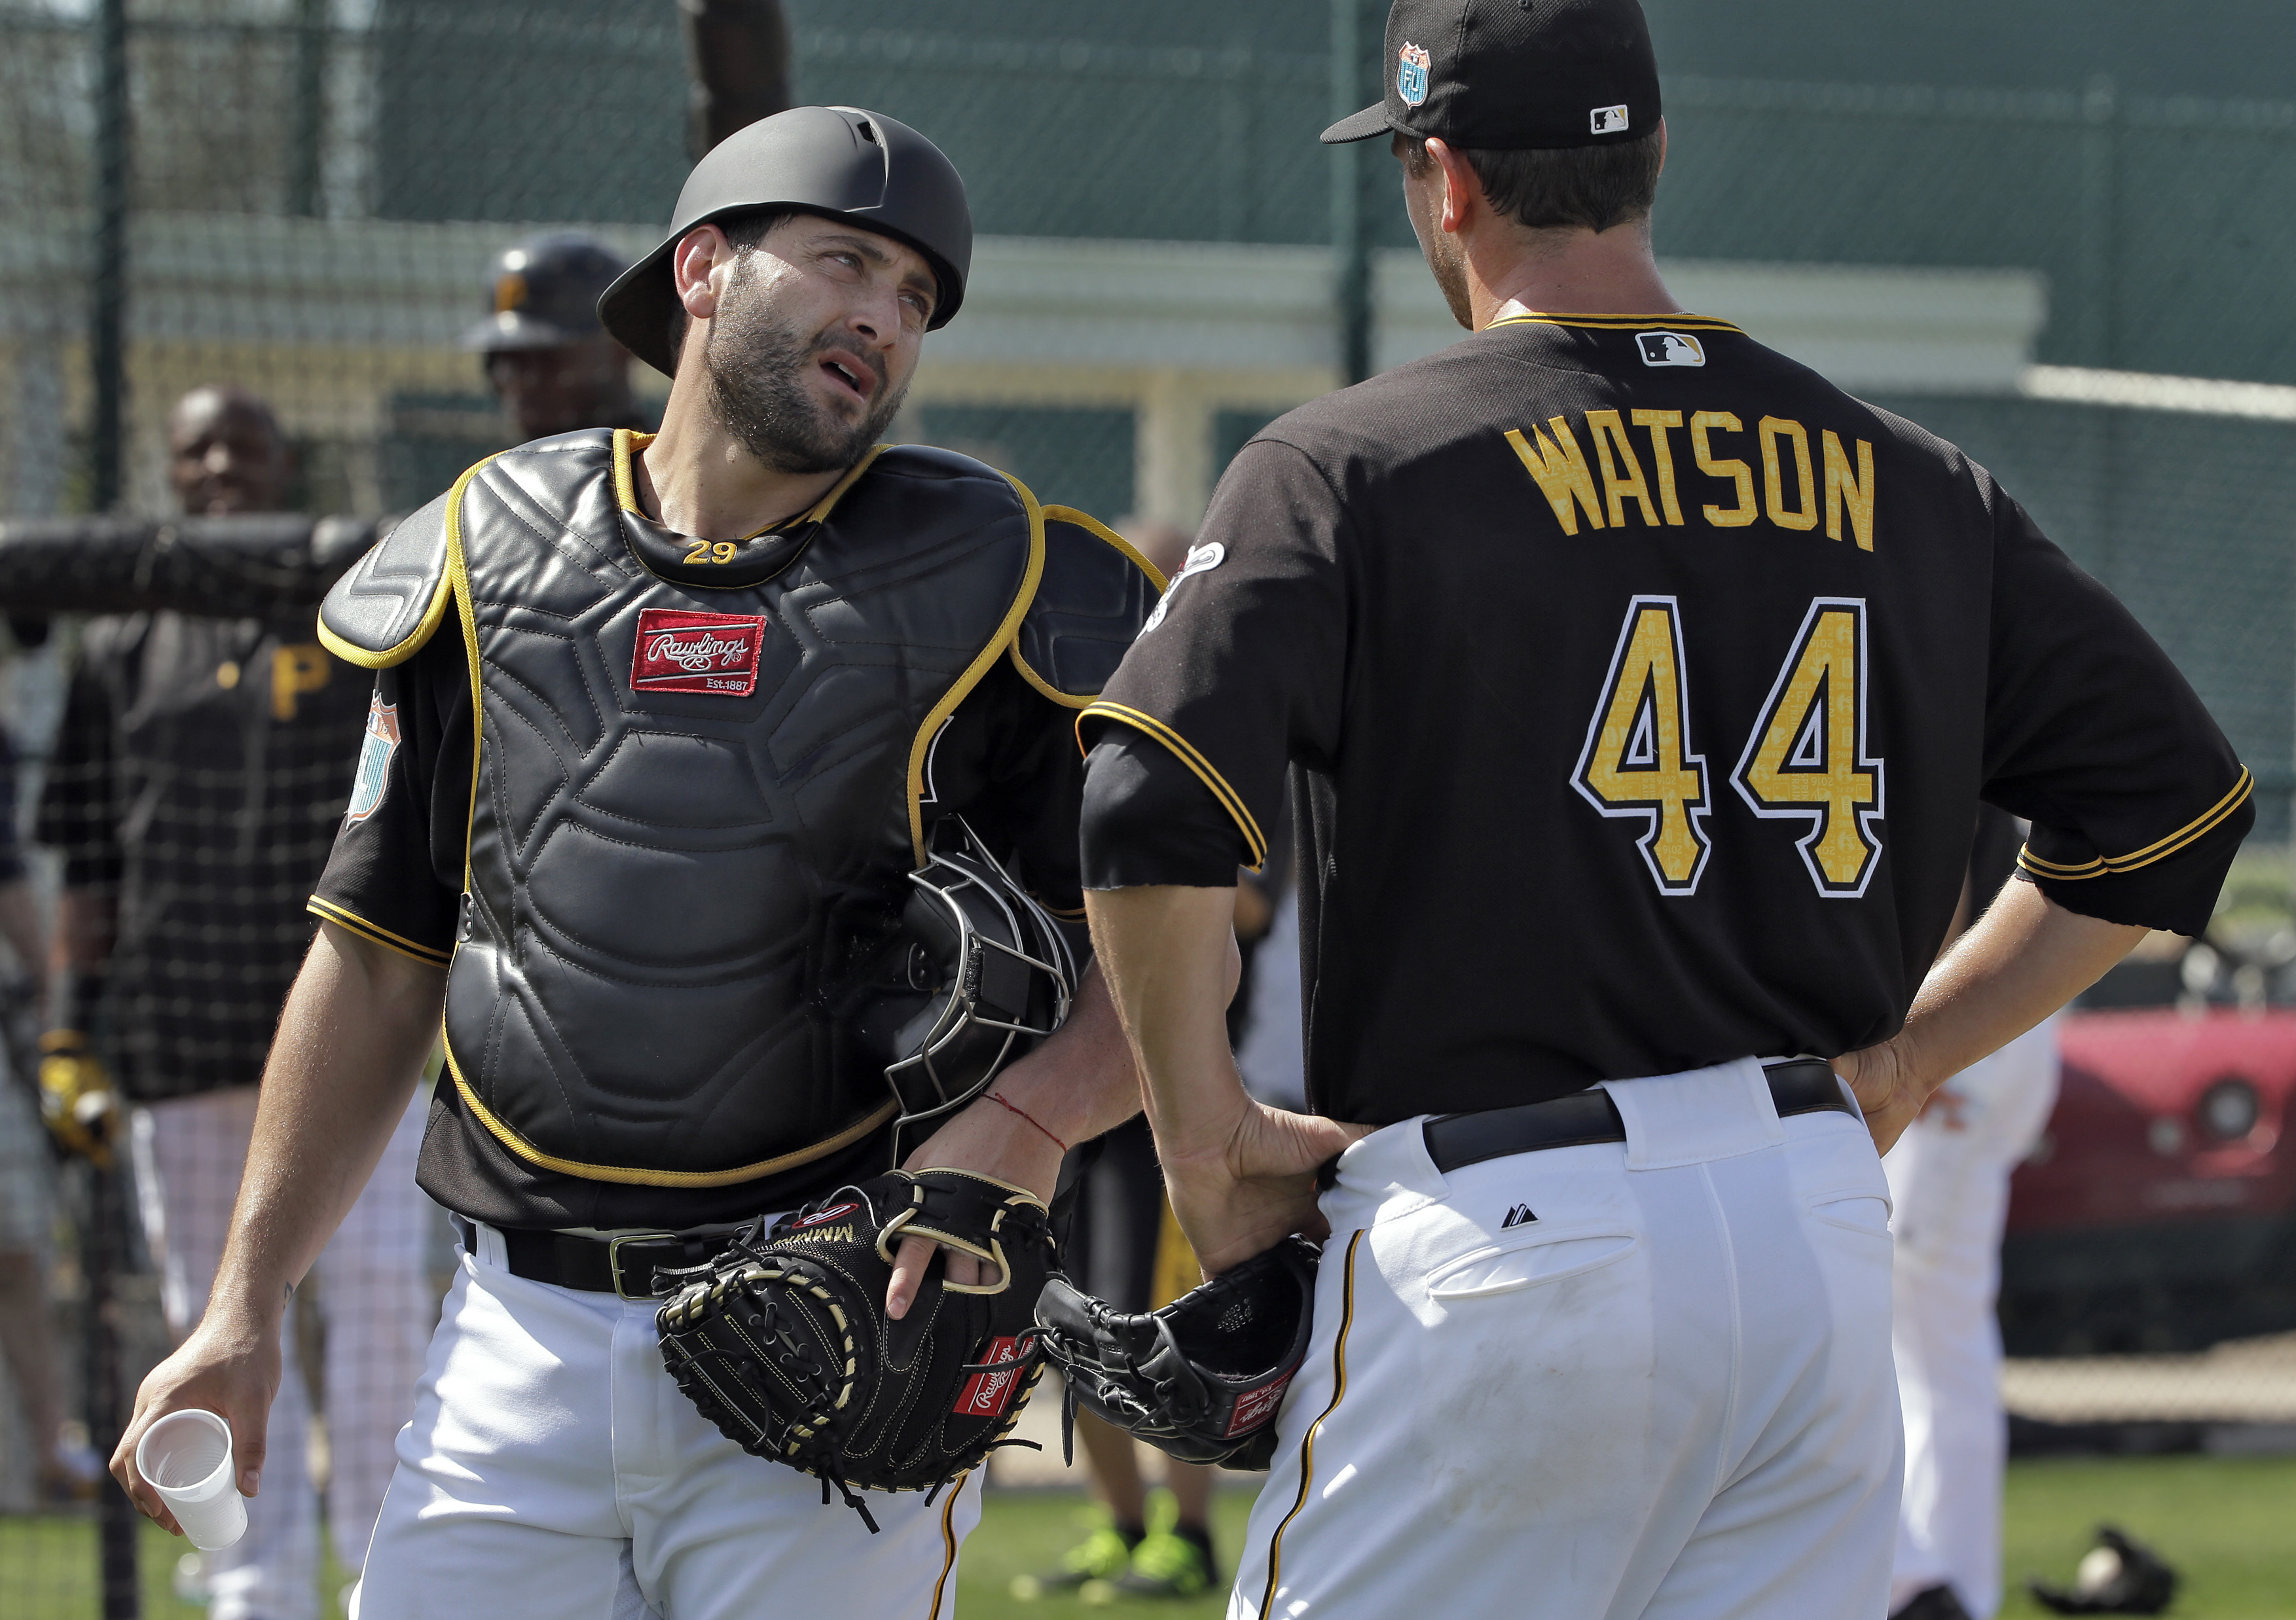 Pittsburgh Pirates catcher Francisco Cervelli, left, talks to relief pitcher Tony Watson after throwing live batting practice during a spring training baseball workout Tuesday, Feb. 23, 2016, in Bradenton, Fla. (AP Photo/Chris O'Meara)